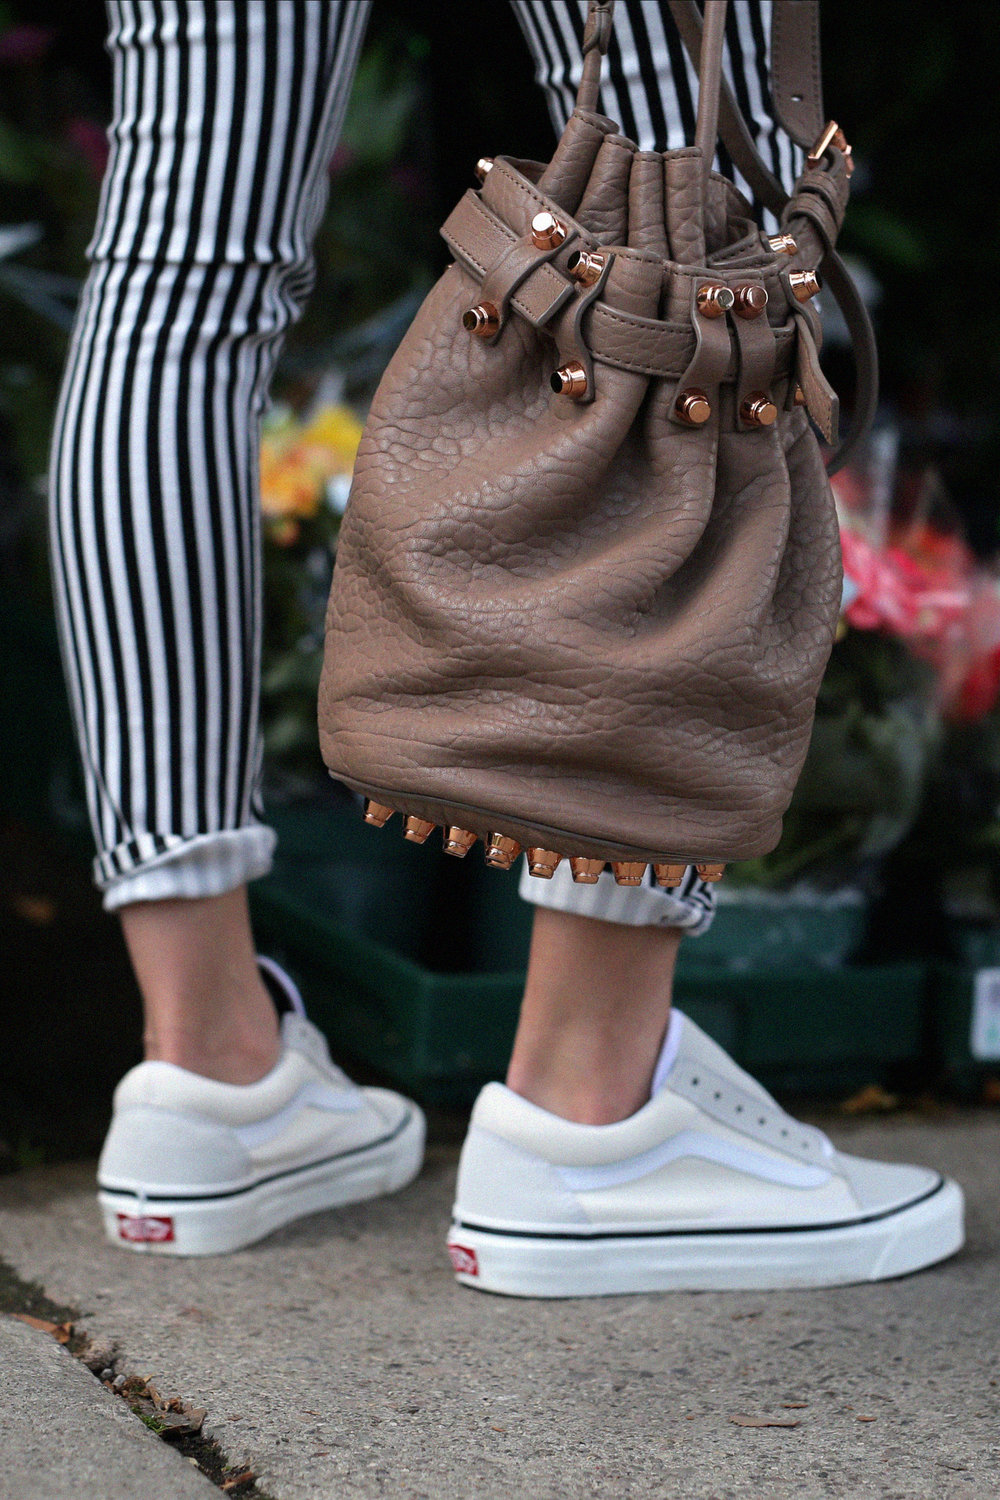 vans DIY denim star jacket, old skool sneakers, striped rag and bone jeans and Alexander Wang Diego bag in tan and rose gold hardware _7041.jpg